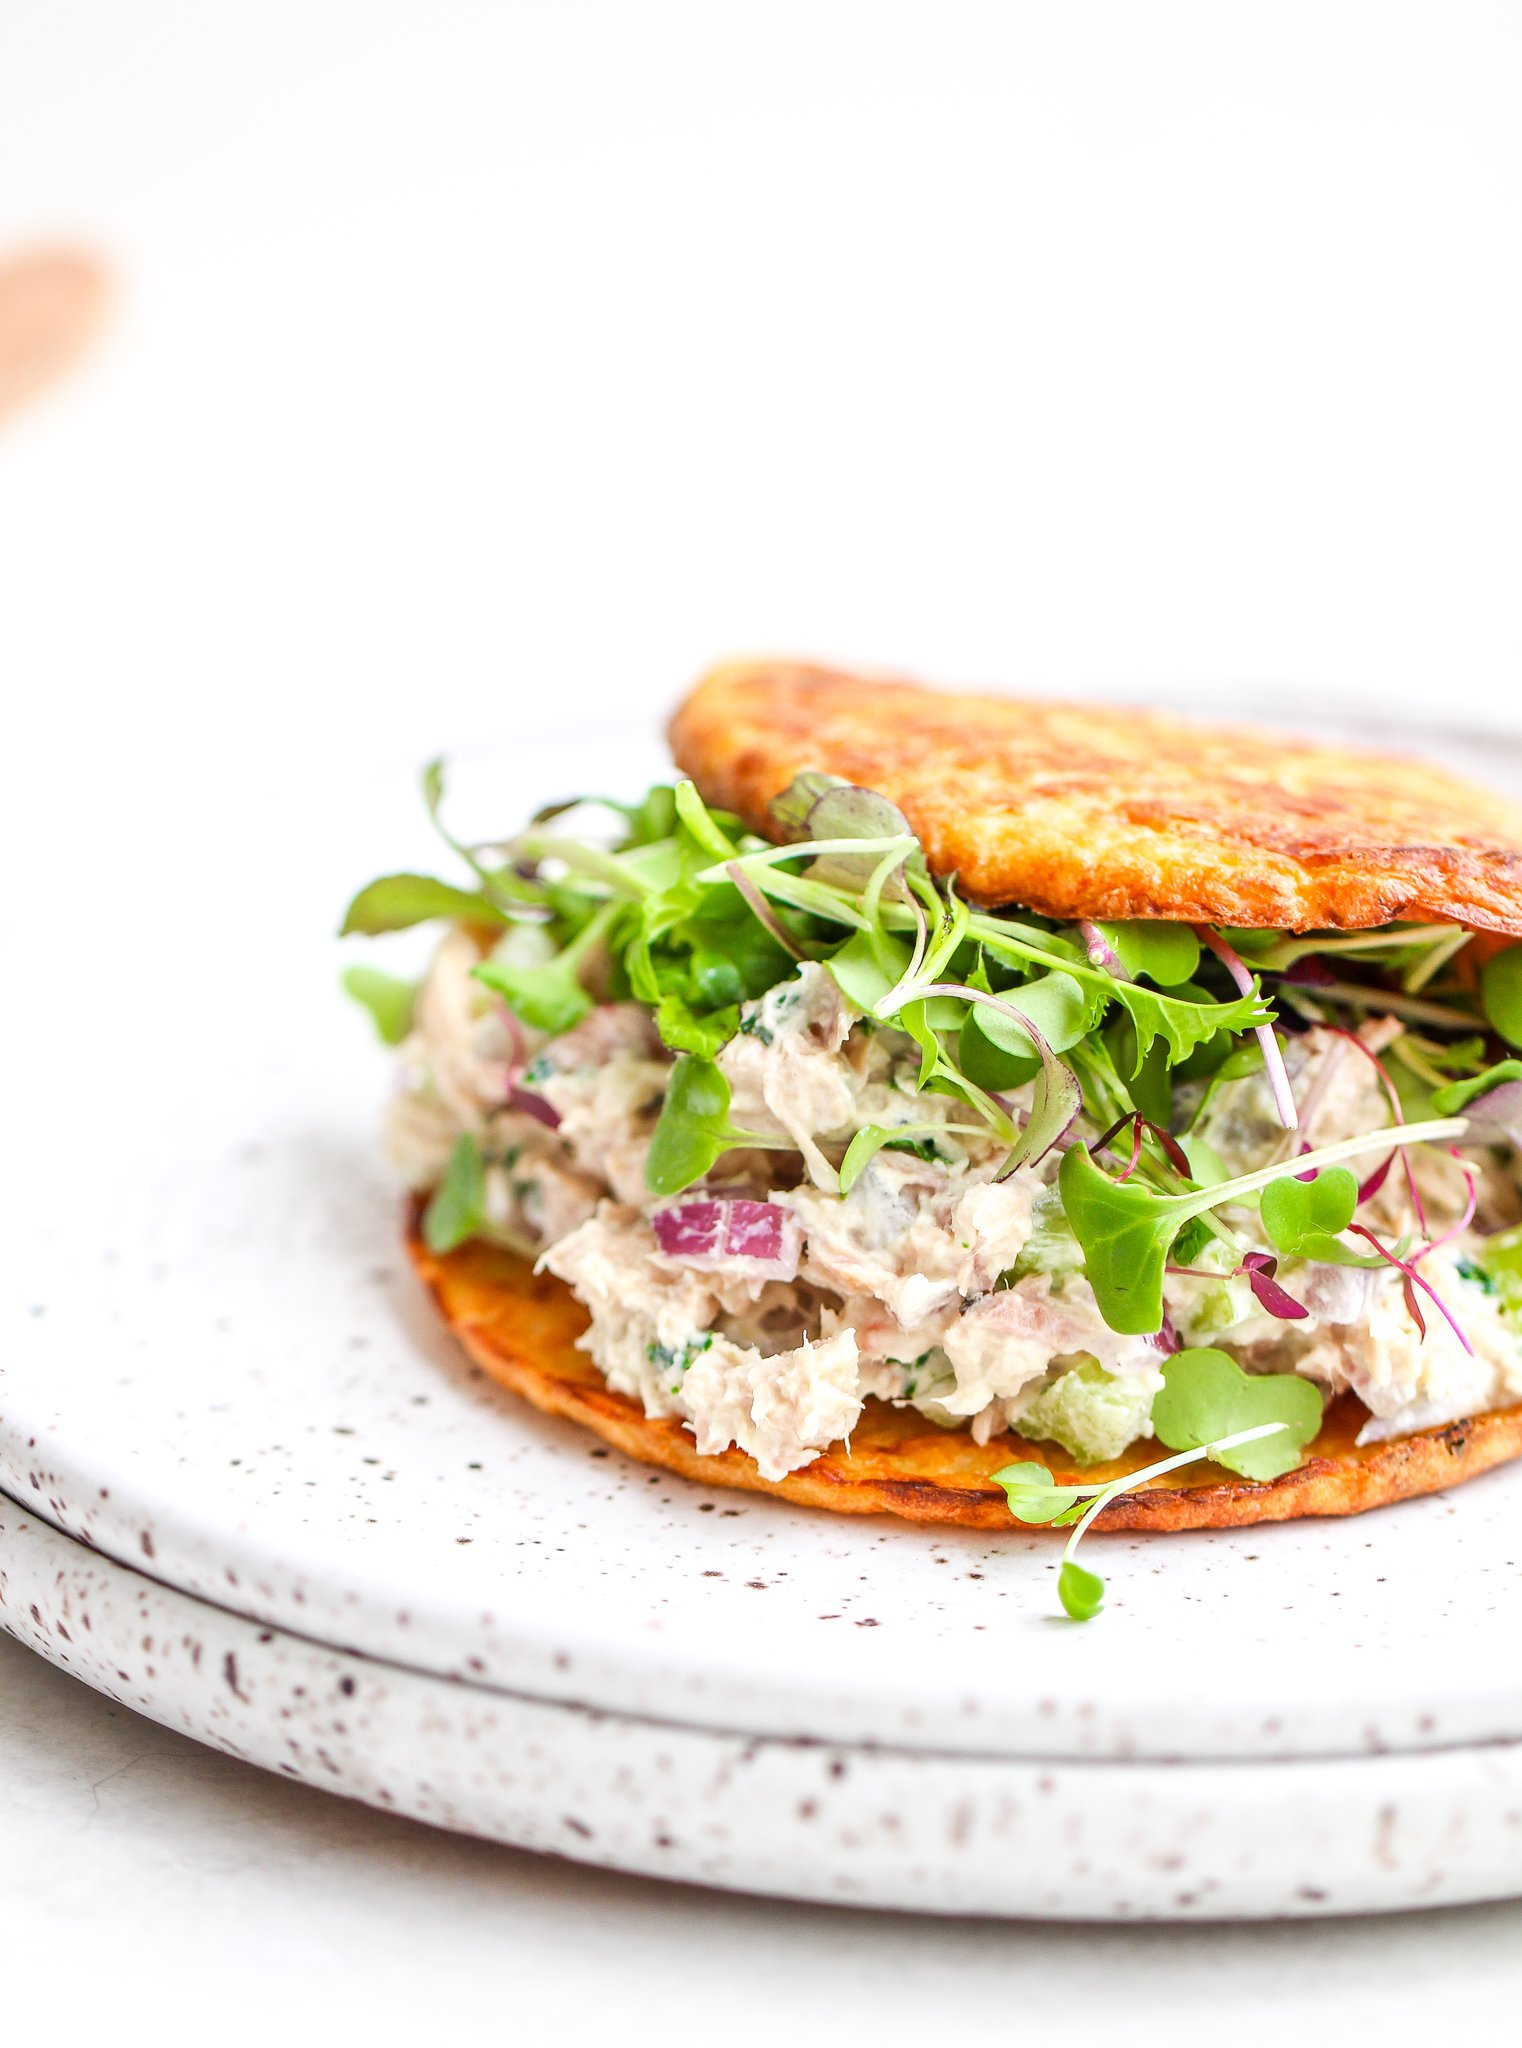 low carb tuna salad sandwiched between two toasted cauliflower thins and topped with fresh micro greens